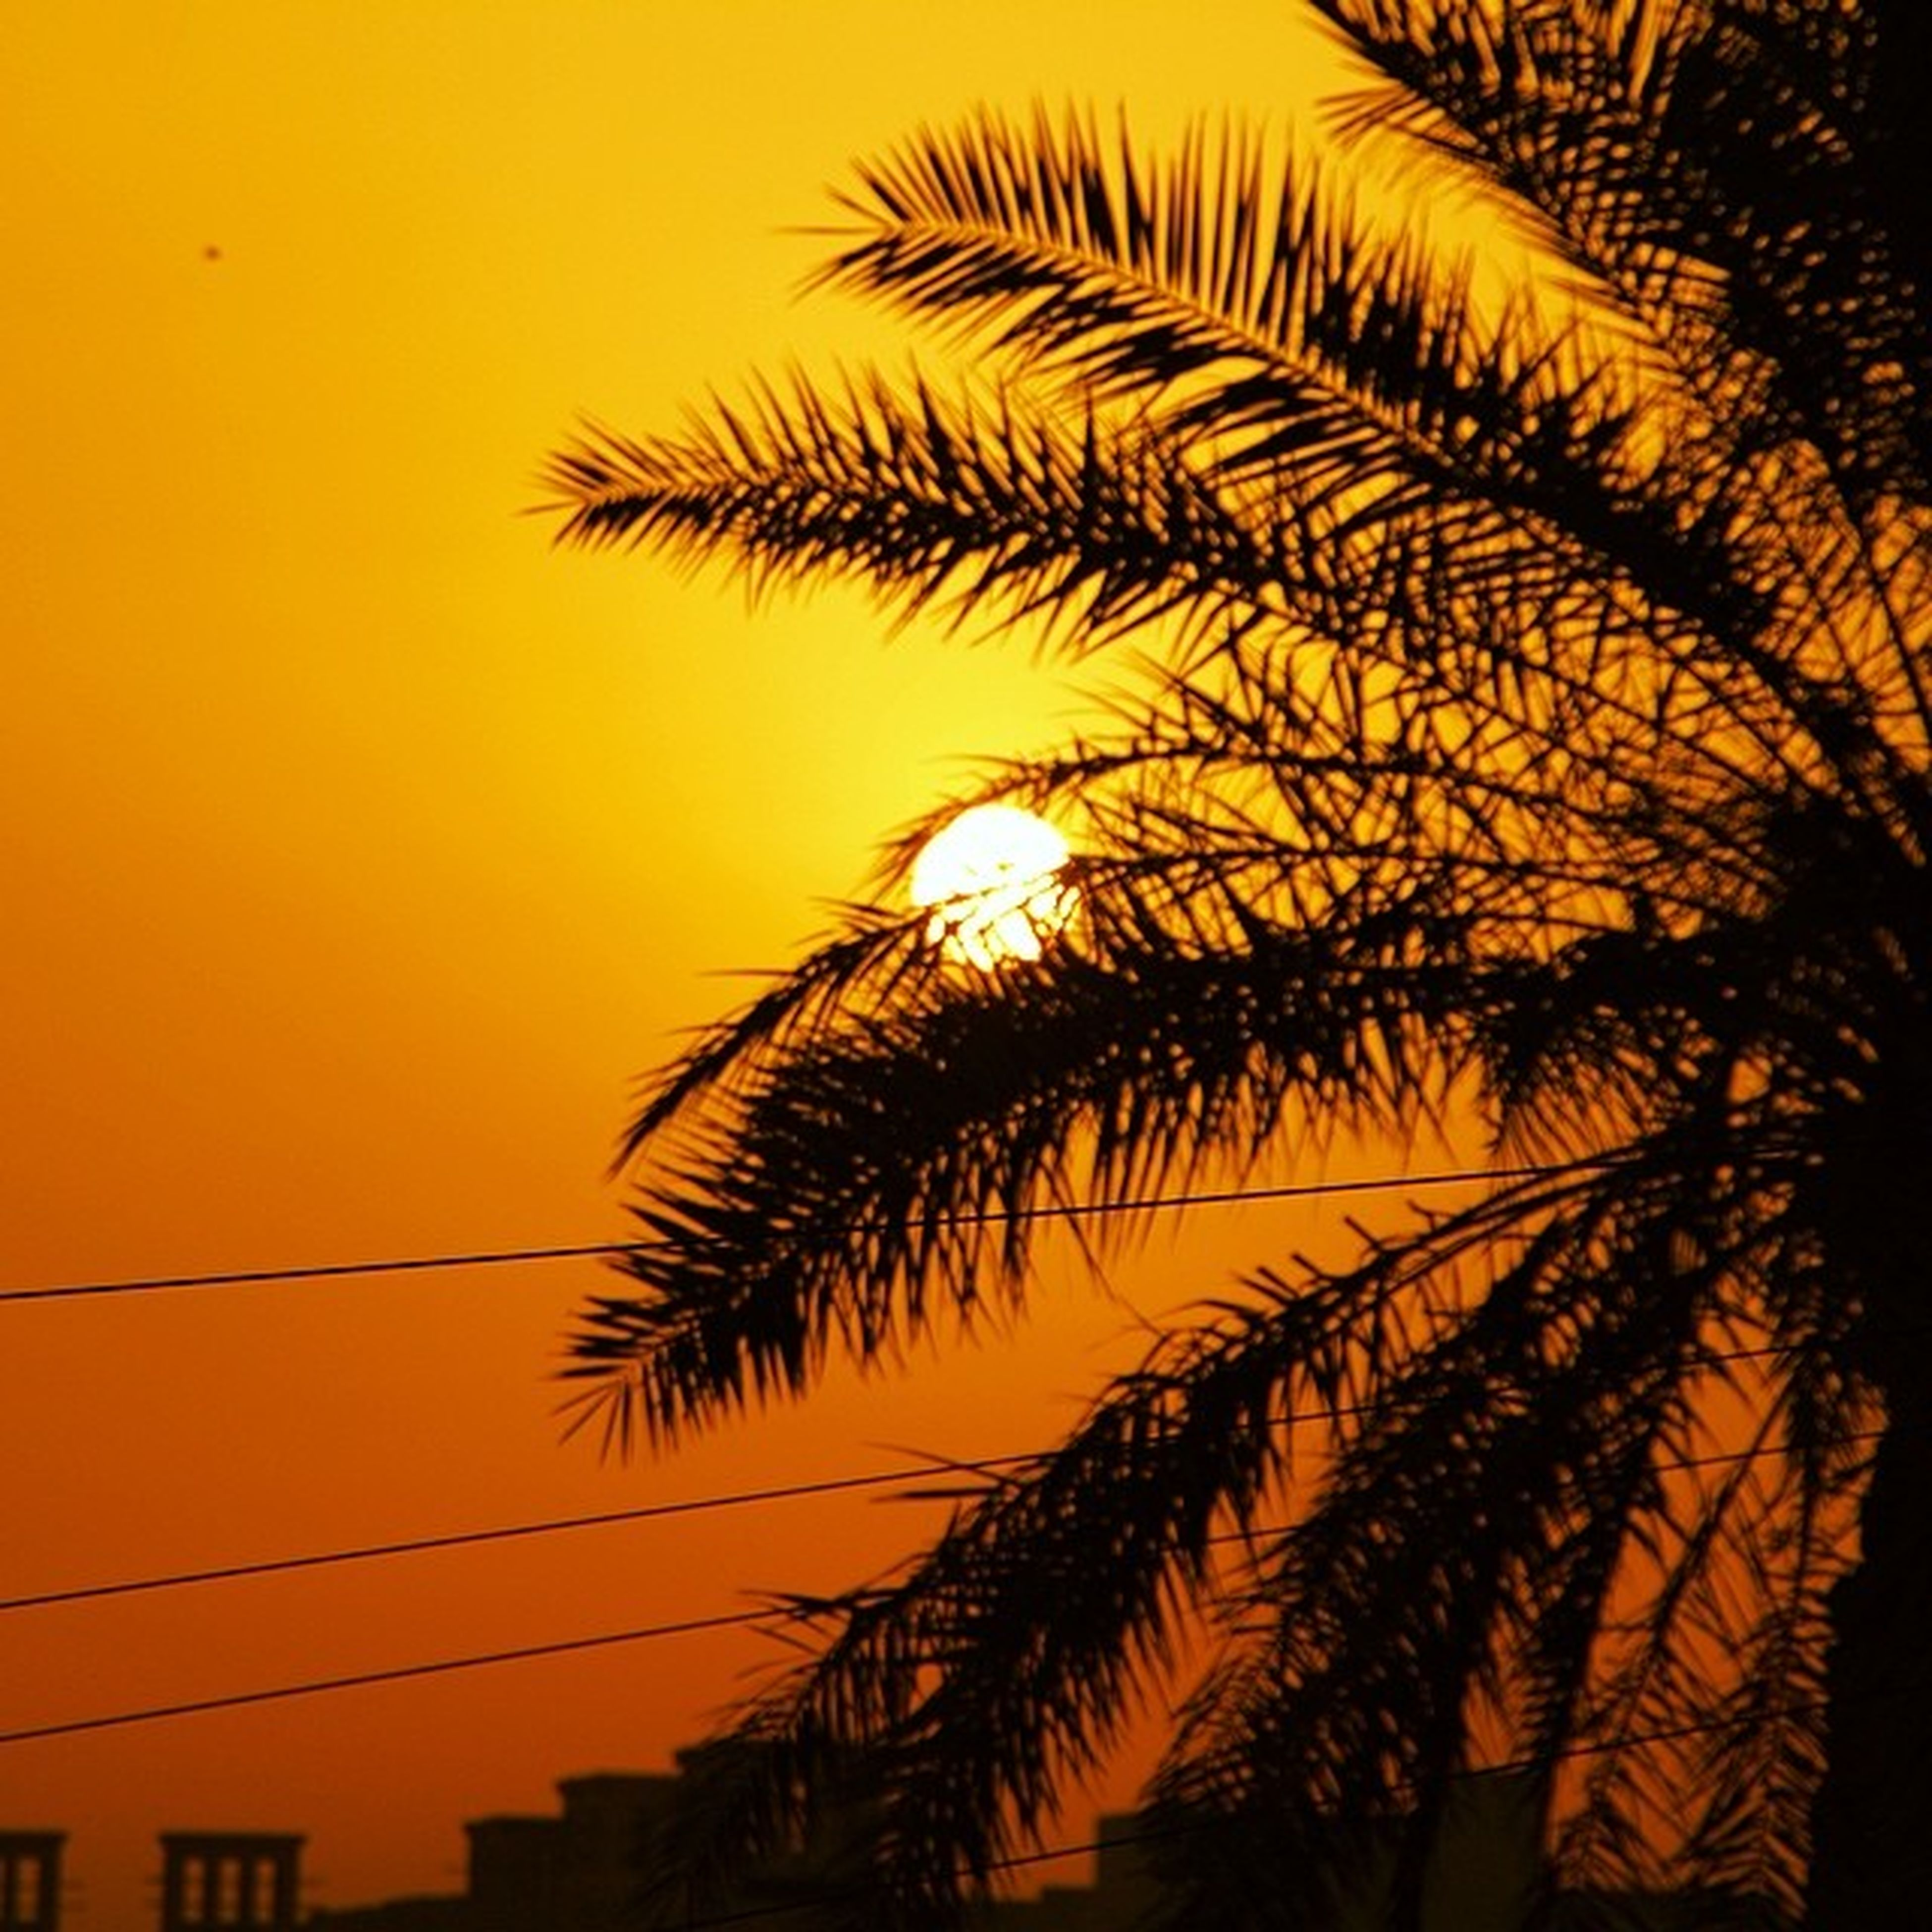 sunset, palm tree, silhouette, orange color, low angle view, growth, beauty in nature, nature, tree, sky, tranquility, scenics, palm leaf, clear sky, outdoors, no people, sun, tranquil scene, dusk, idyllic